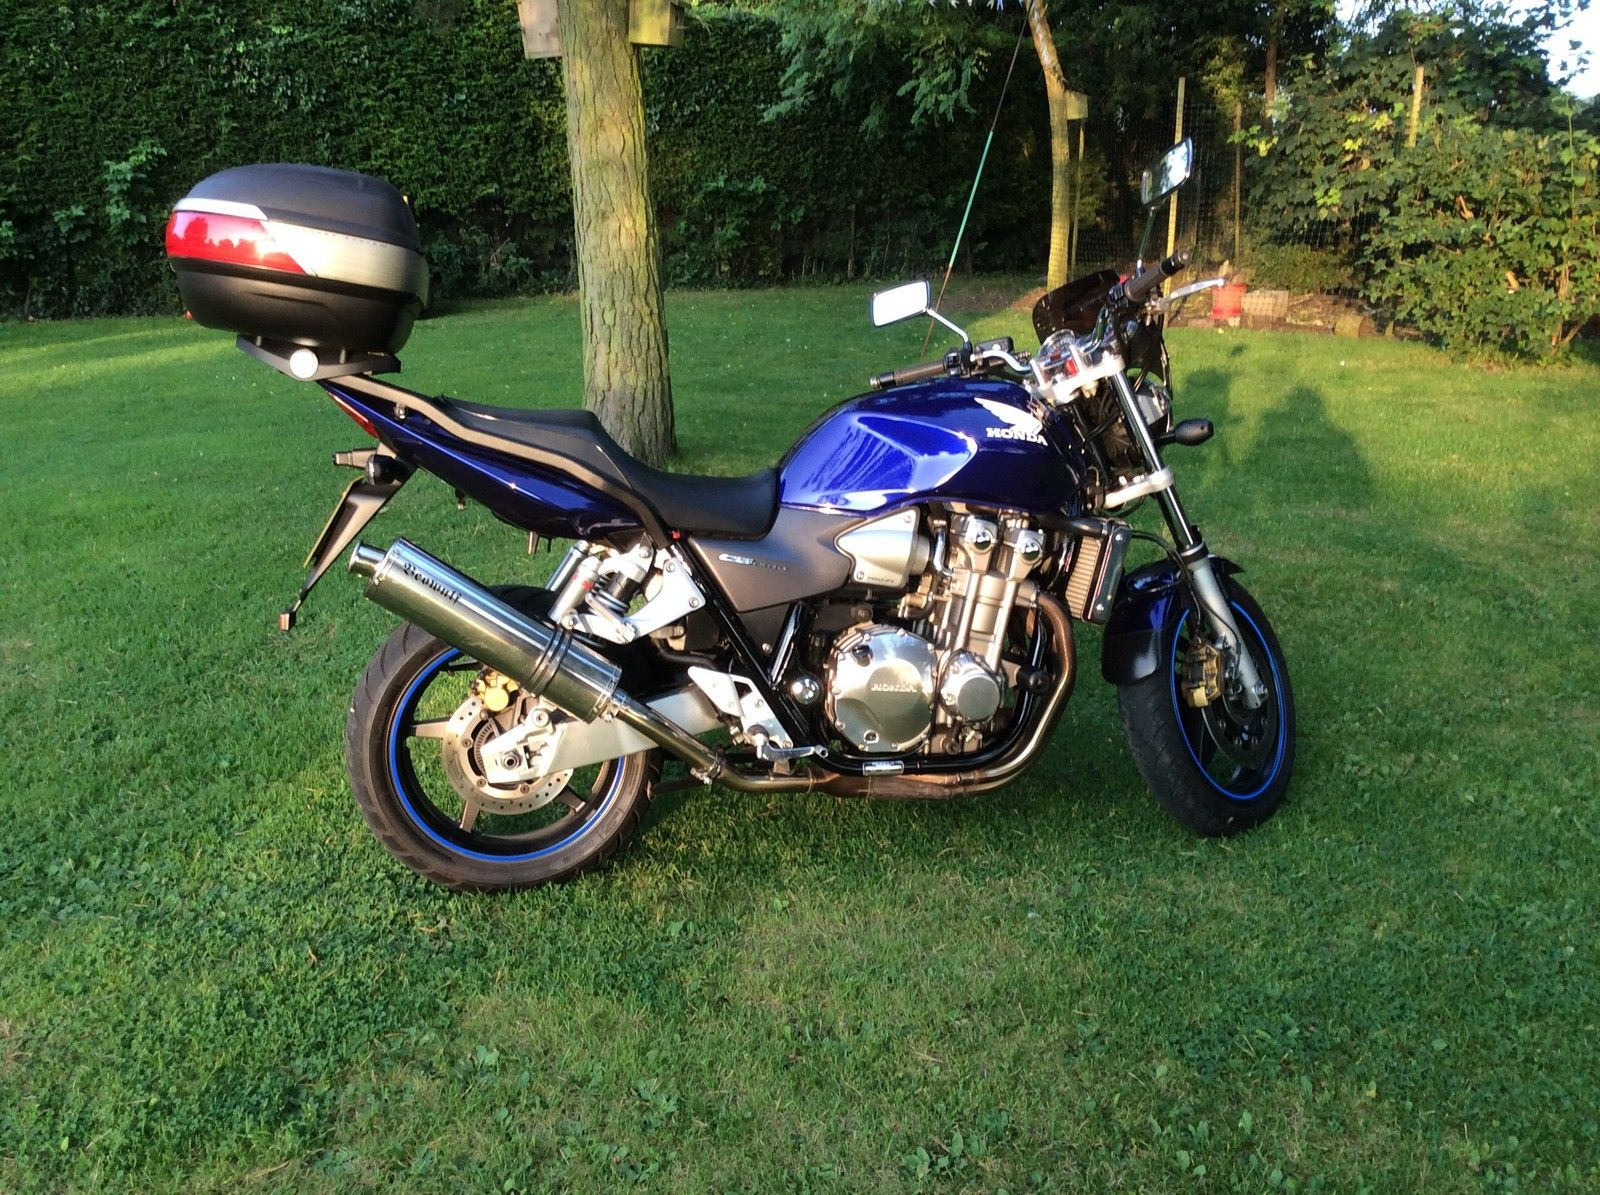 Used Hondas For Sale Near Me >> 2007 HONDA CB 1300 A-5 BLUE IN BEAUTIFUL CONDITION